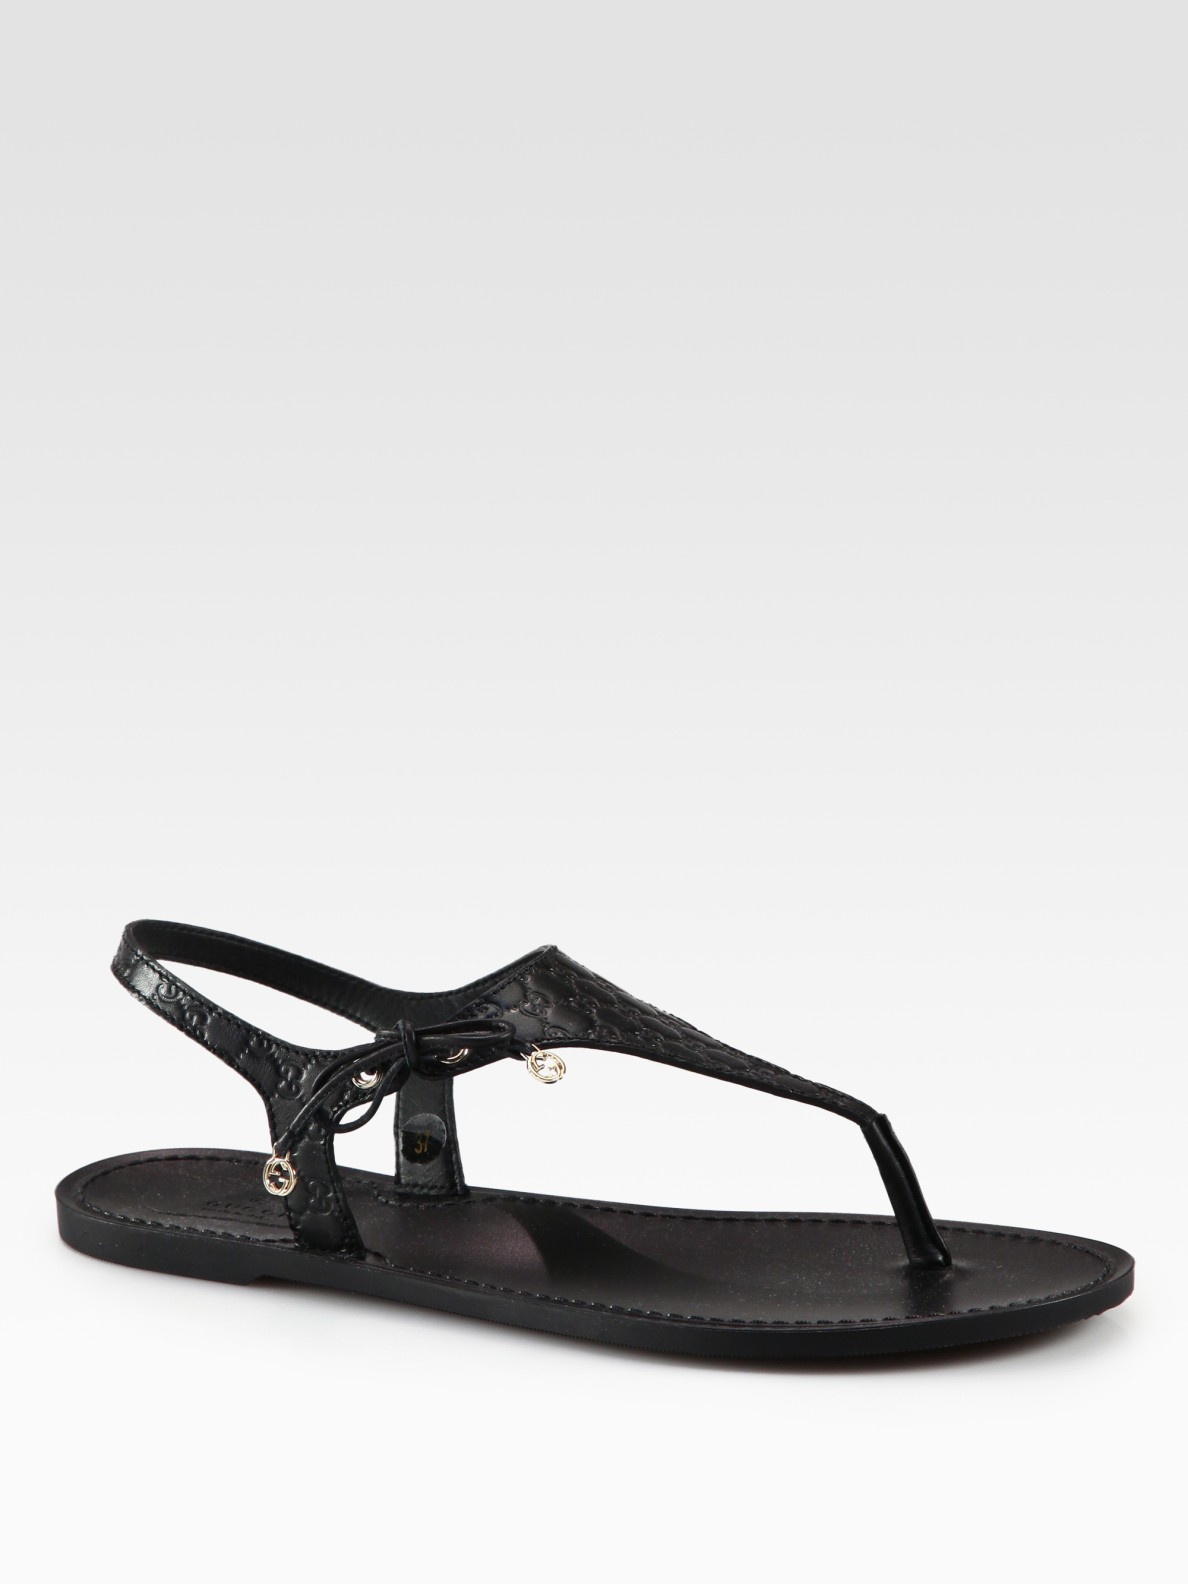 Gucci Katina Leather Thong Sandals In Black Lyst